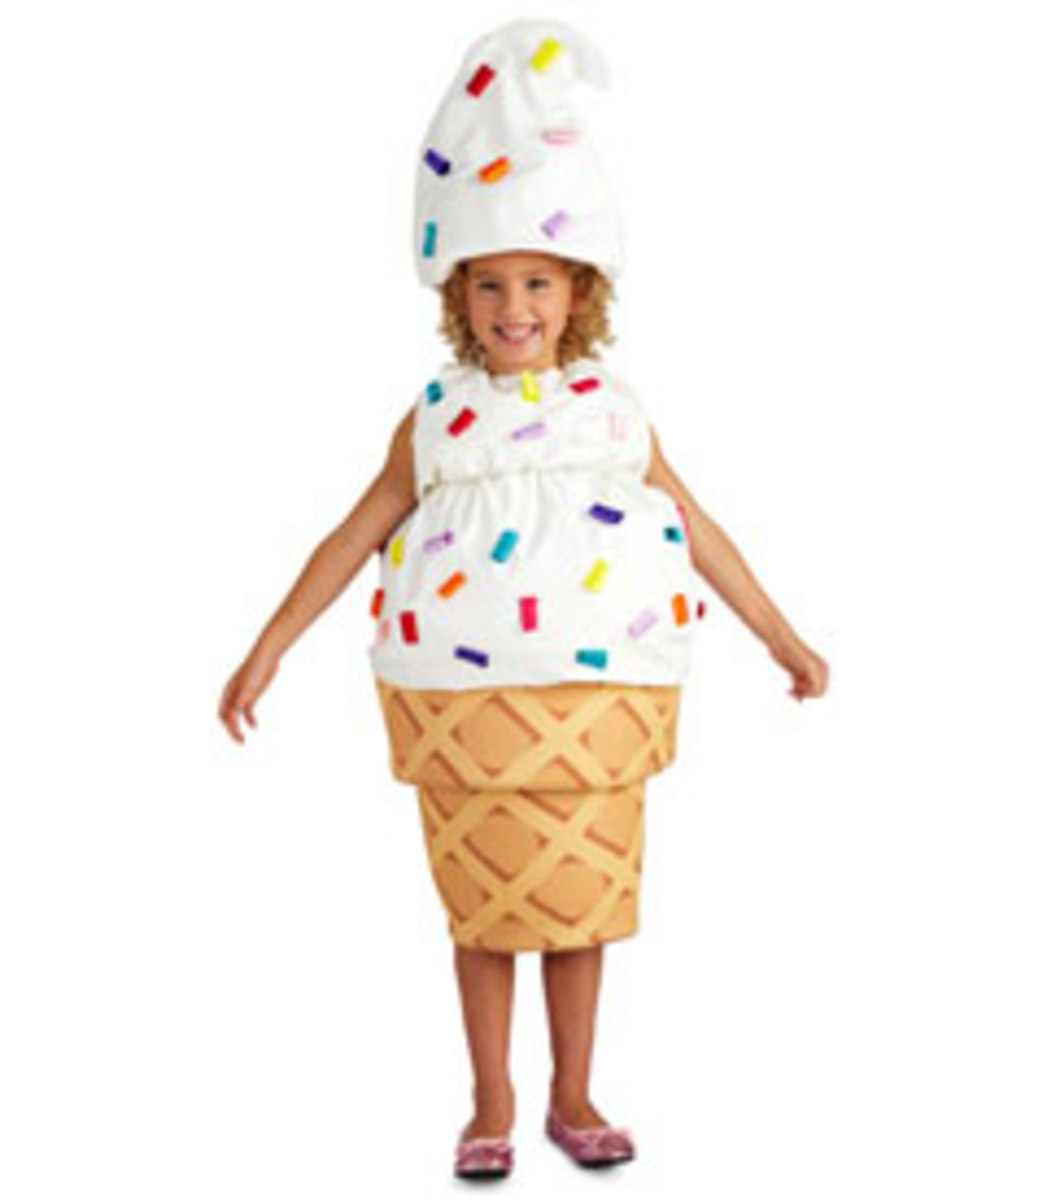 ice cream cone costume on a little girl - cute!